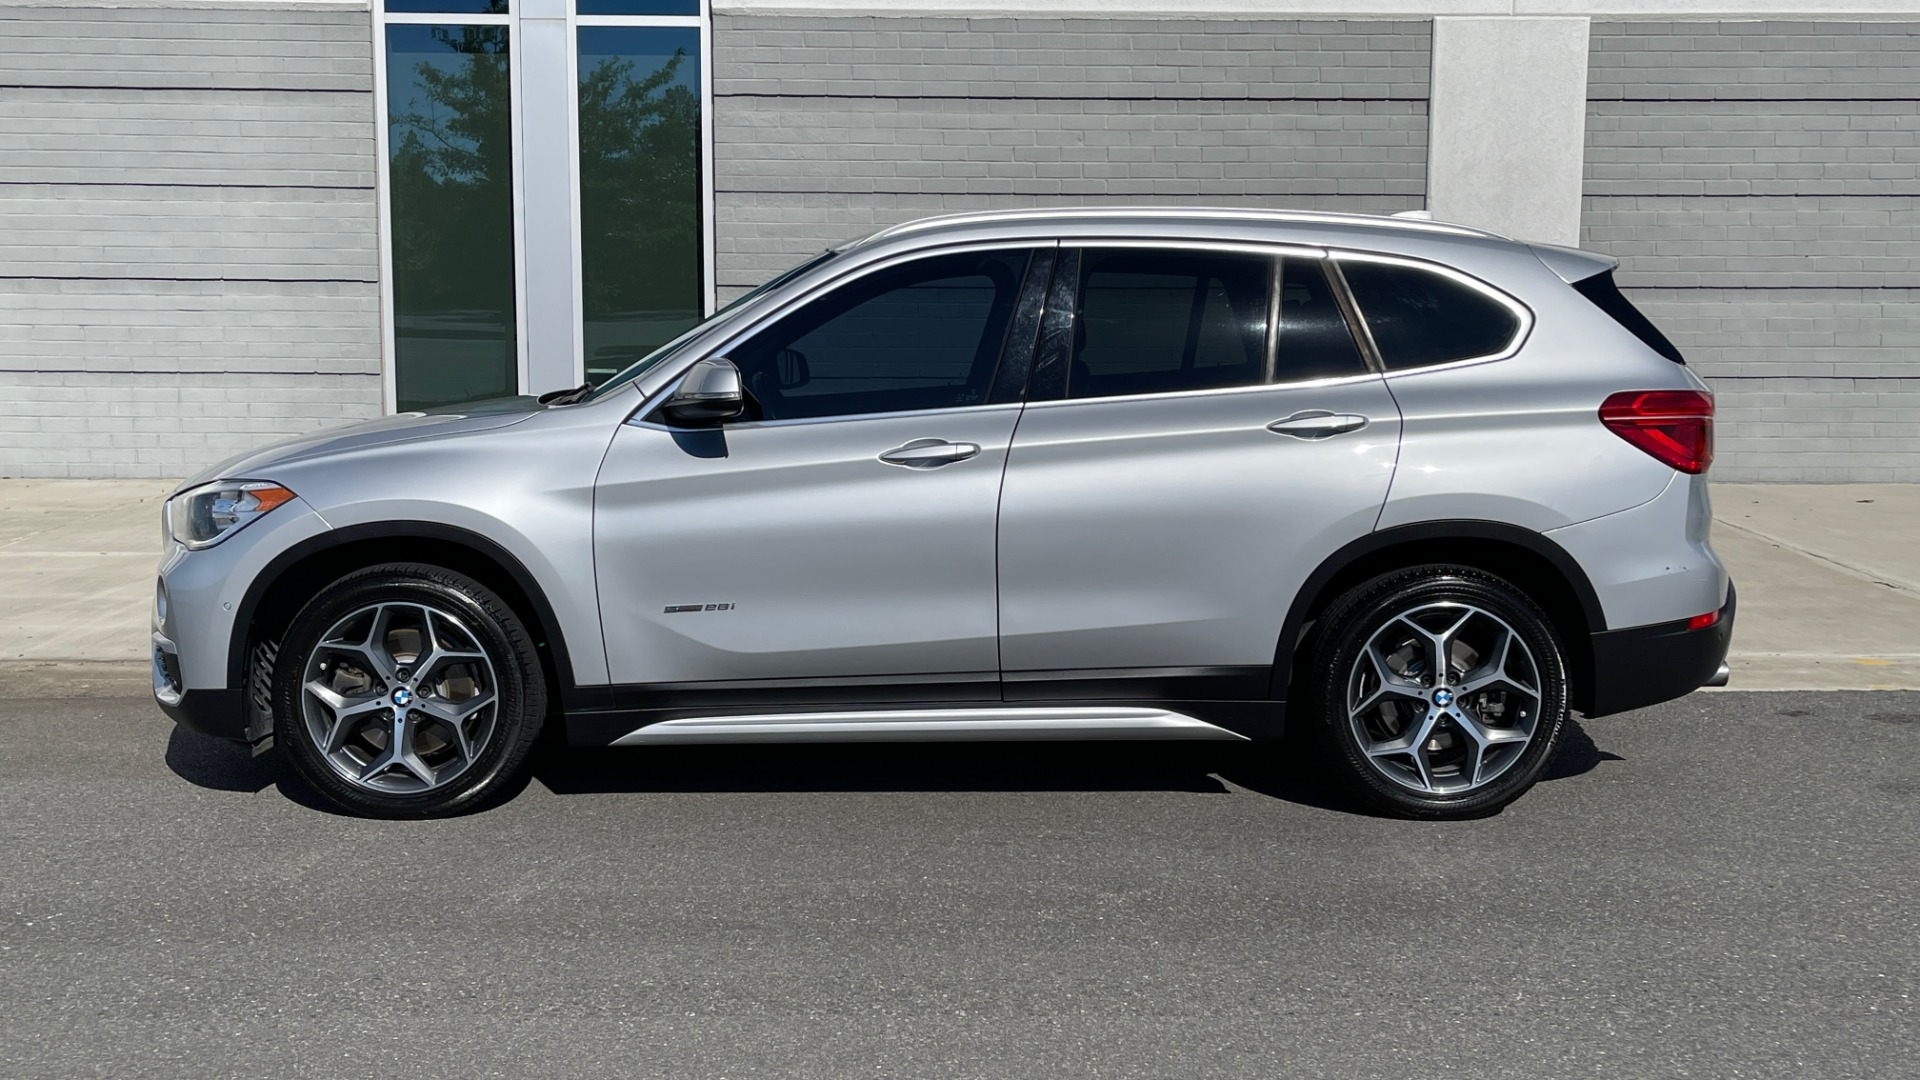 Used 2017 BMW X1 SDRIVE28I 2.0L / 8-SPD AUTO / DRIVER ASST / PANO-ROOF / REARVIEW for sale $26,995 at Formula Imports in Charlotte NC 28227 4